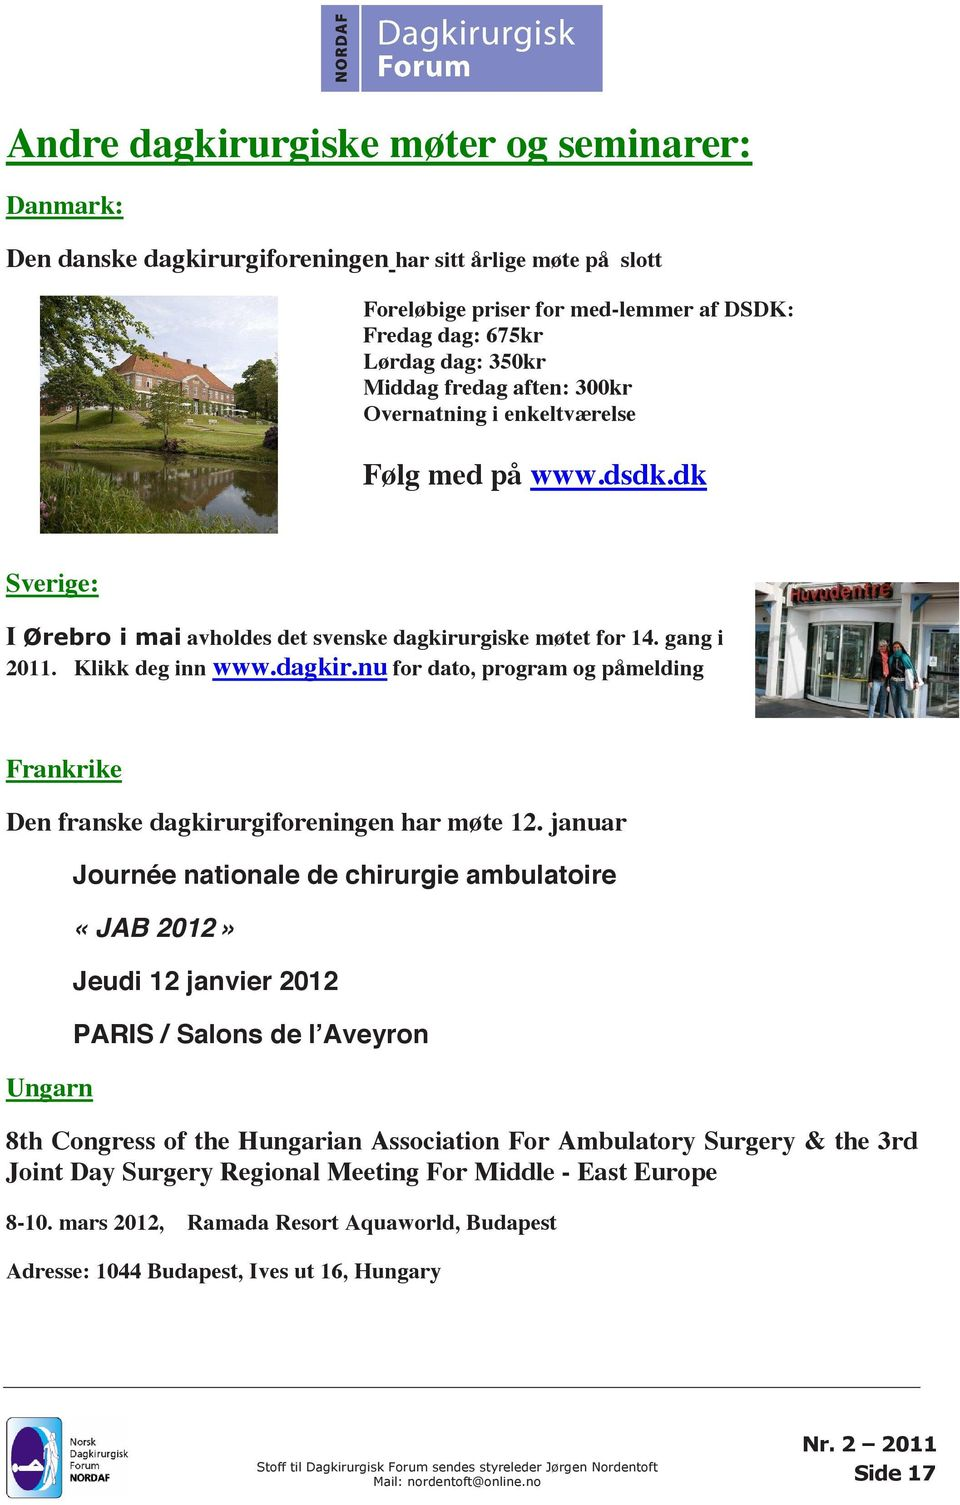 januar Ungarn Journée nationale de chirurgie ambulatoire «JAB 2012» Jeudi 12 janvier 2012 PARIS / Salons de l Aveyron 8th Congress of the Hungarian Association For Ambulatory Surgery & the 3rd Joint